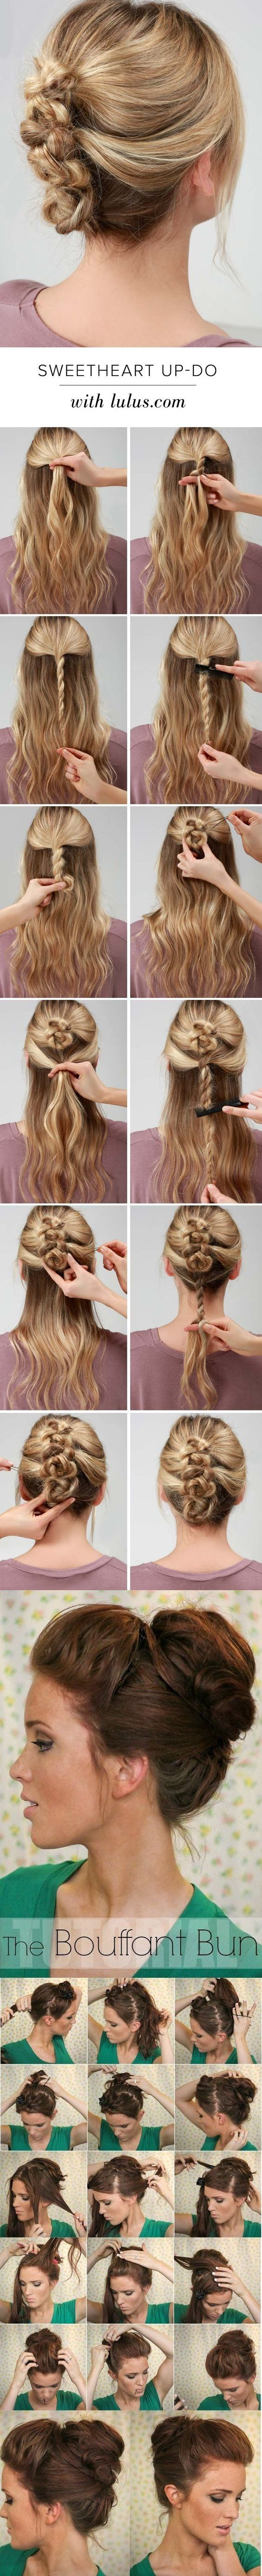 24 Best Frisuren Images On Pinterest Hairstyle Ideas Easy